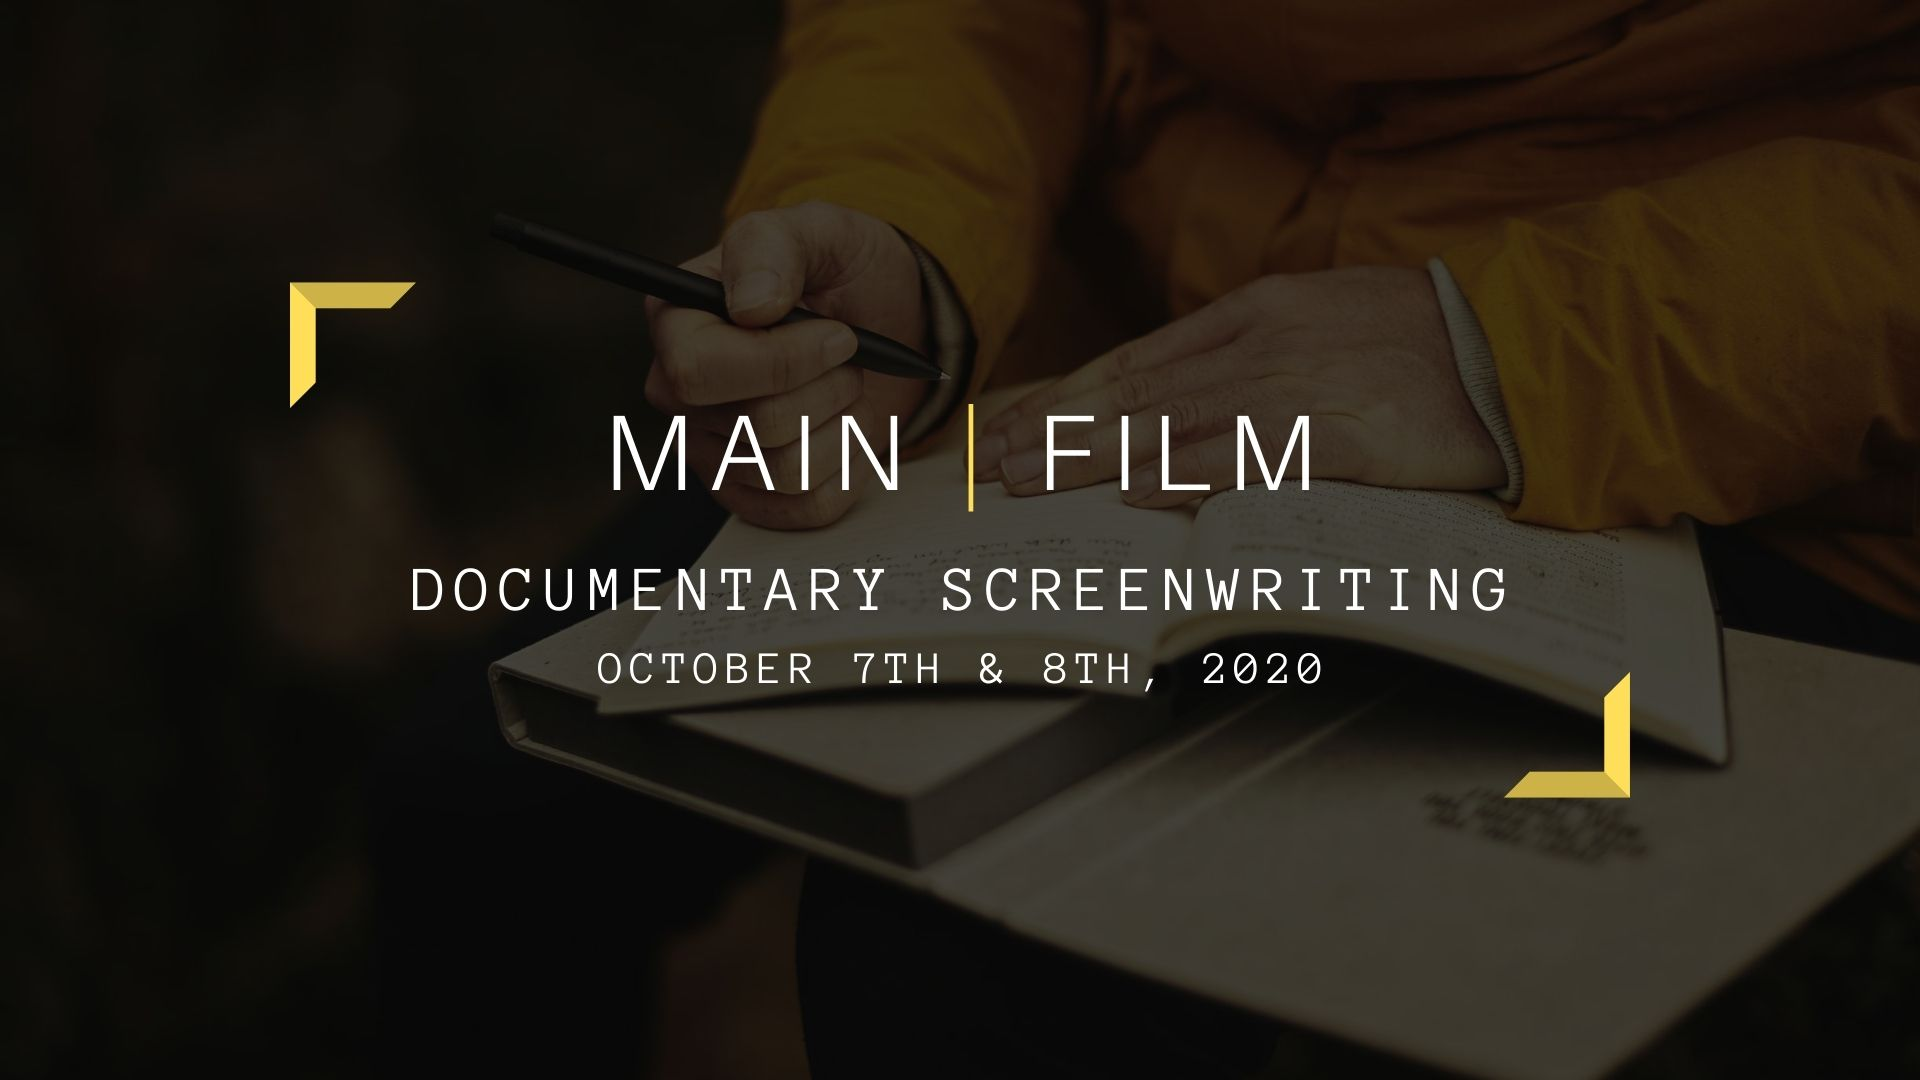 Documentary screenwriting | Online